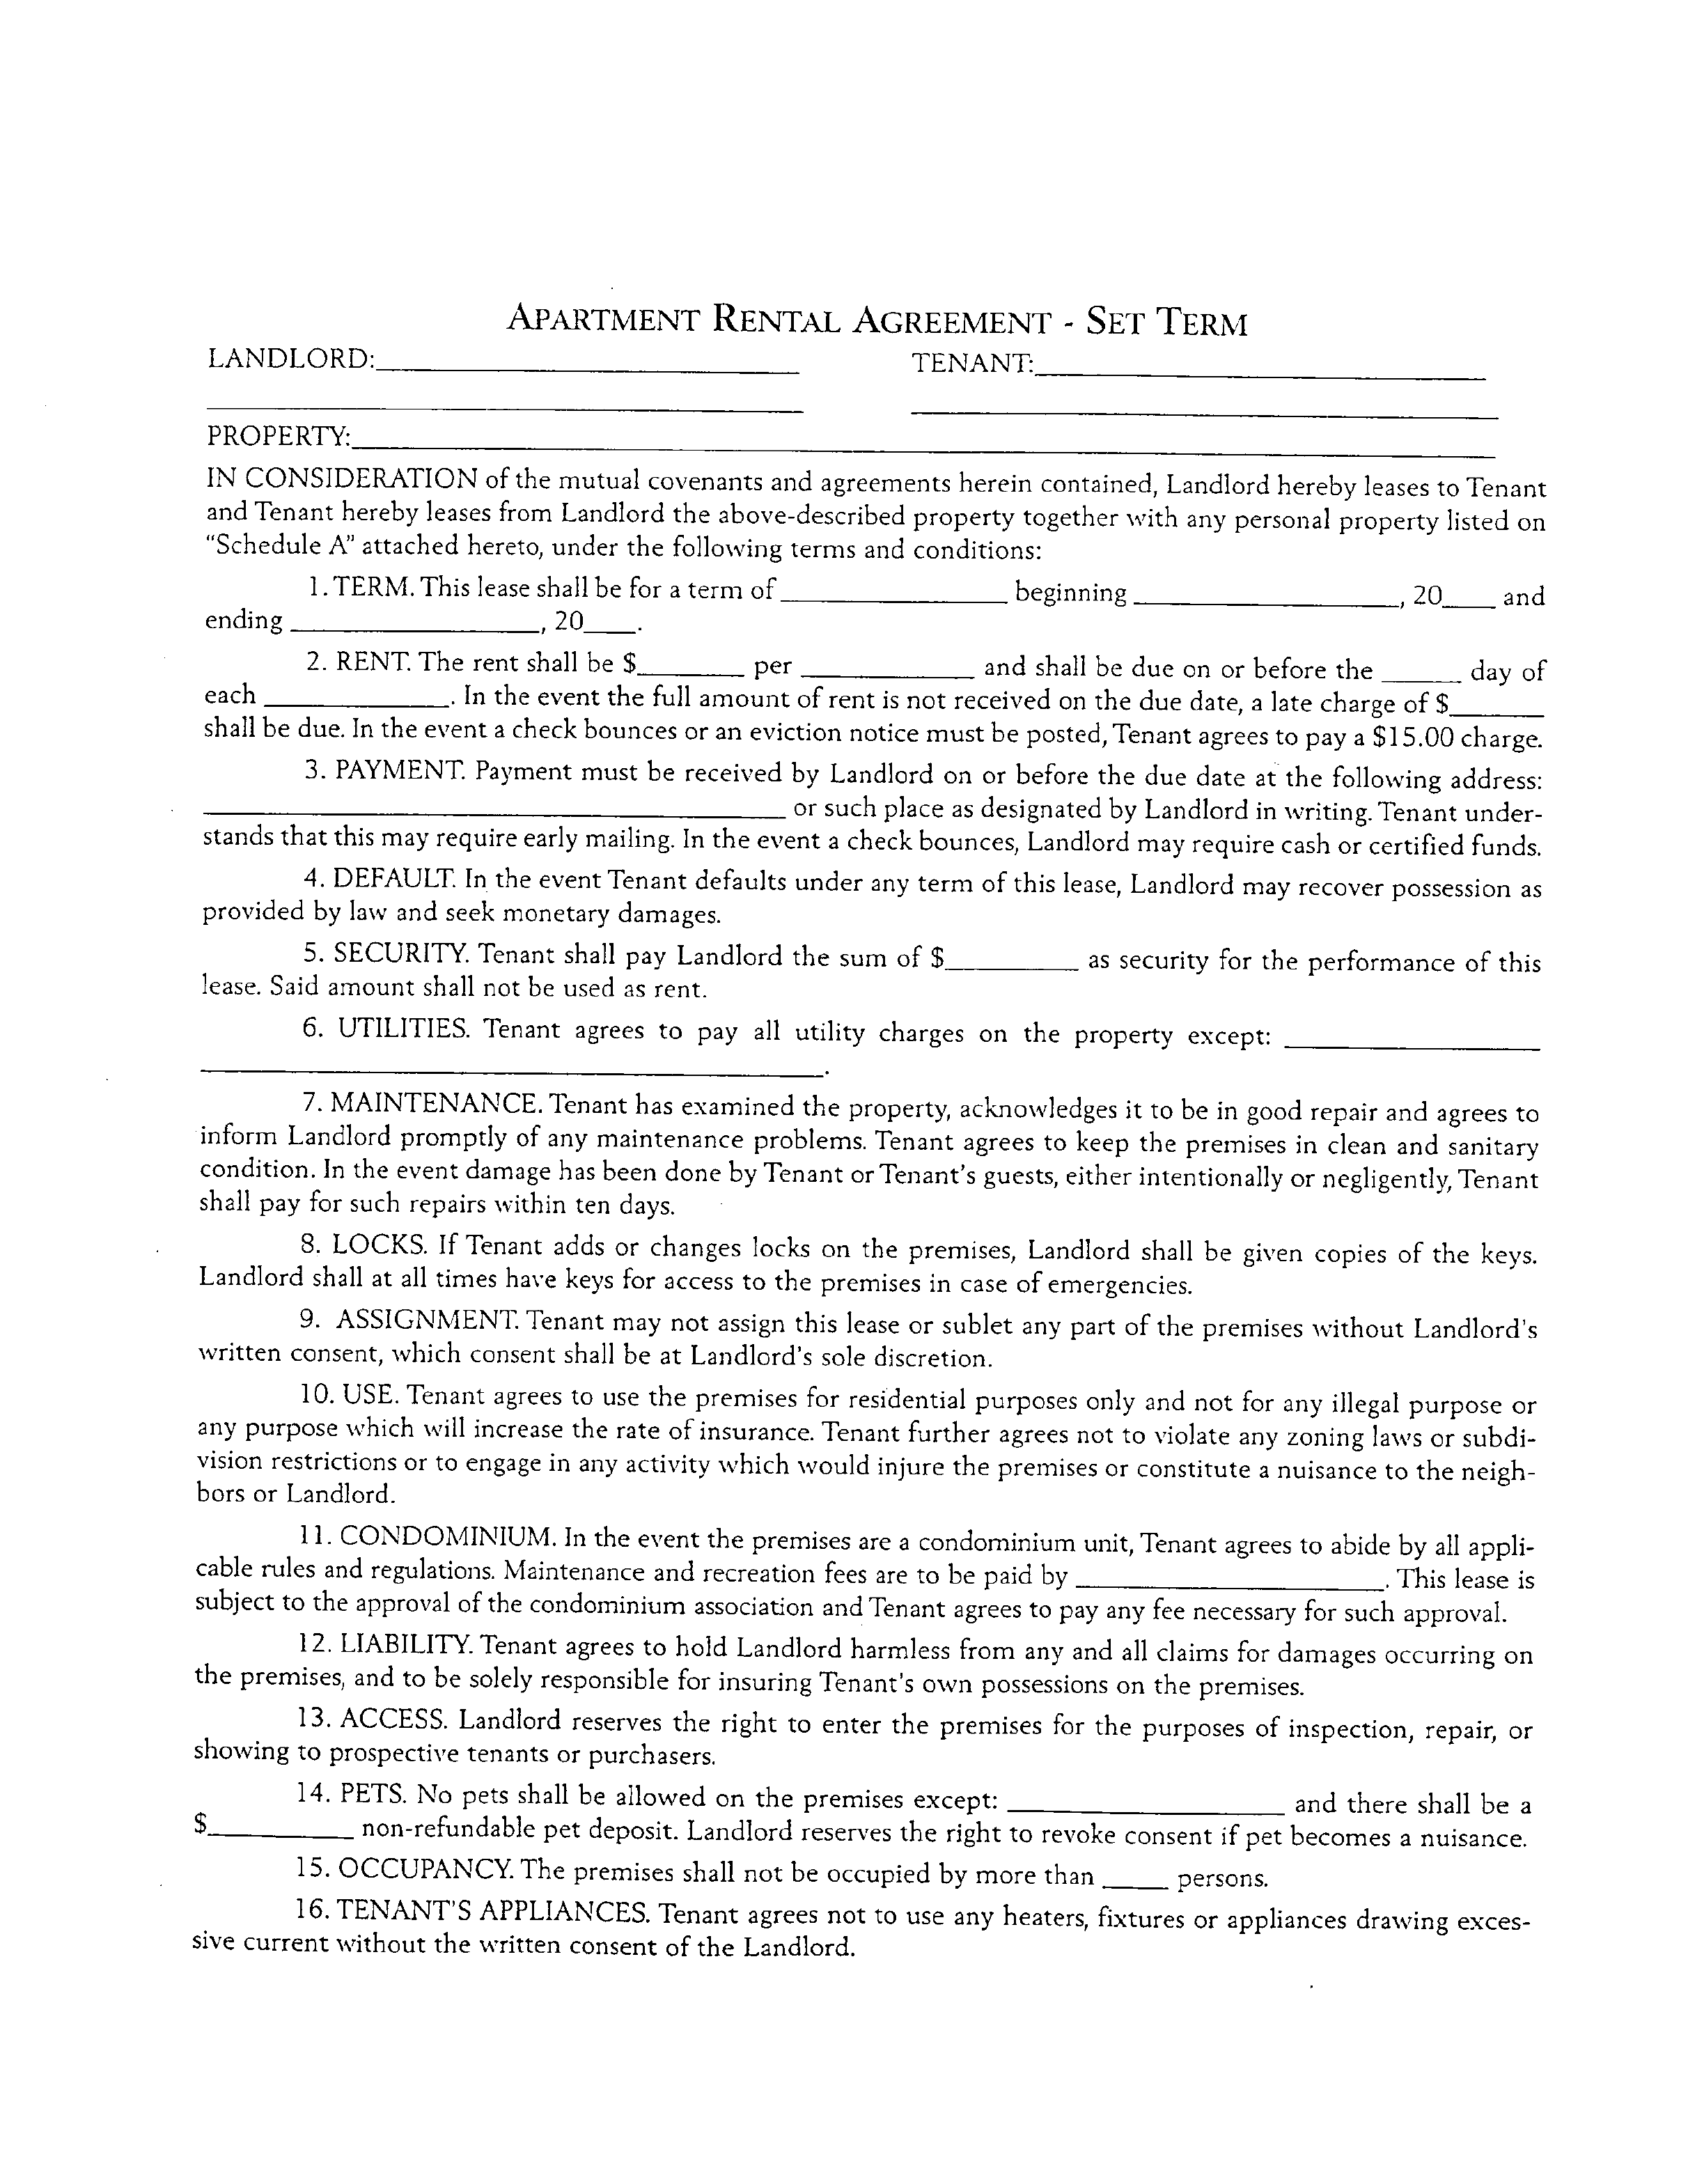 Apartment Rental And Lease Sample Form Free Download